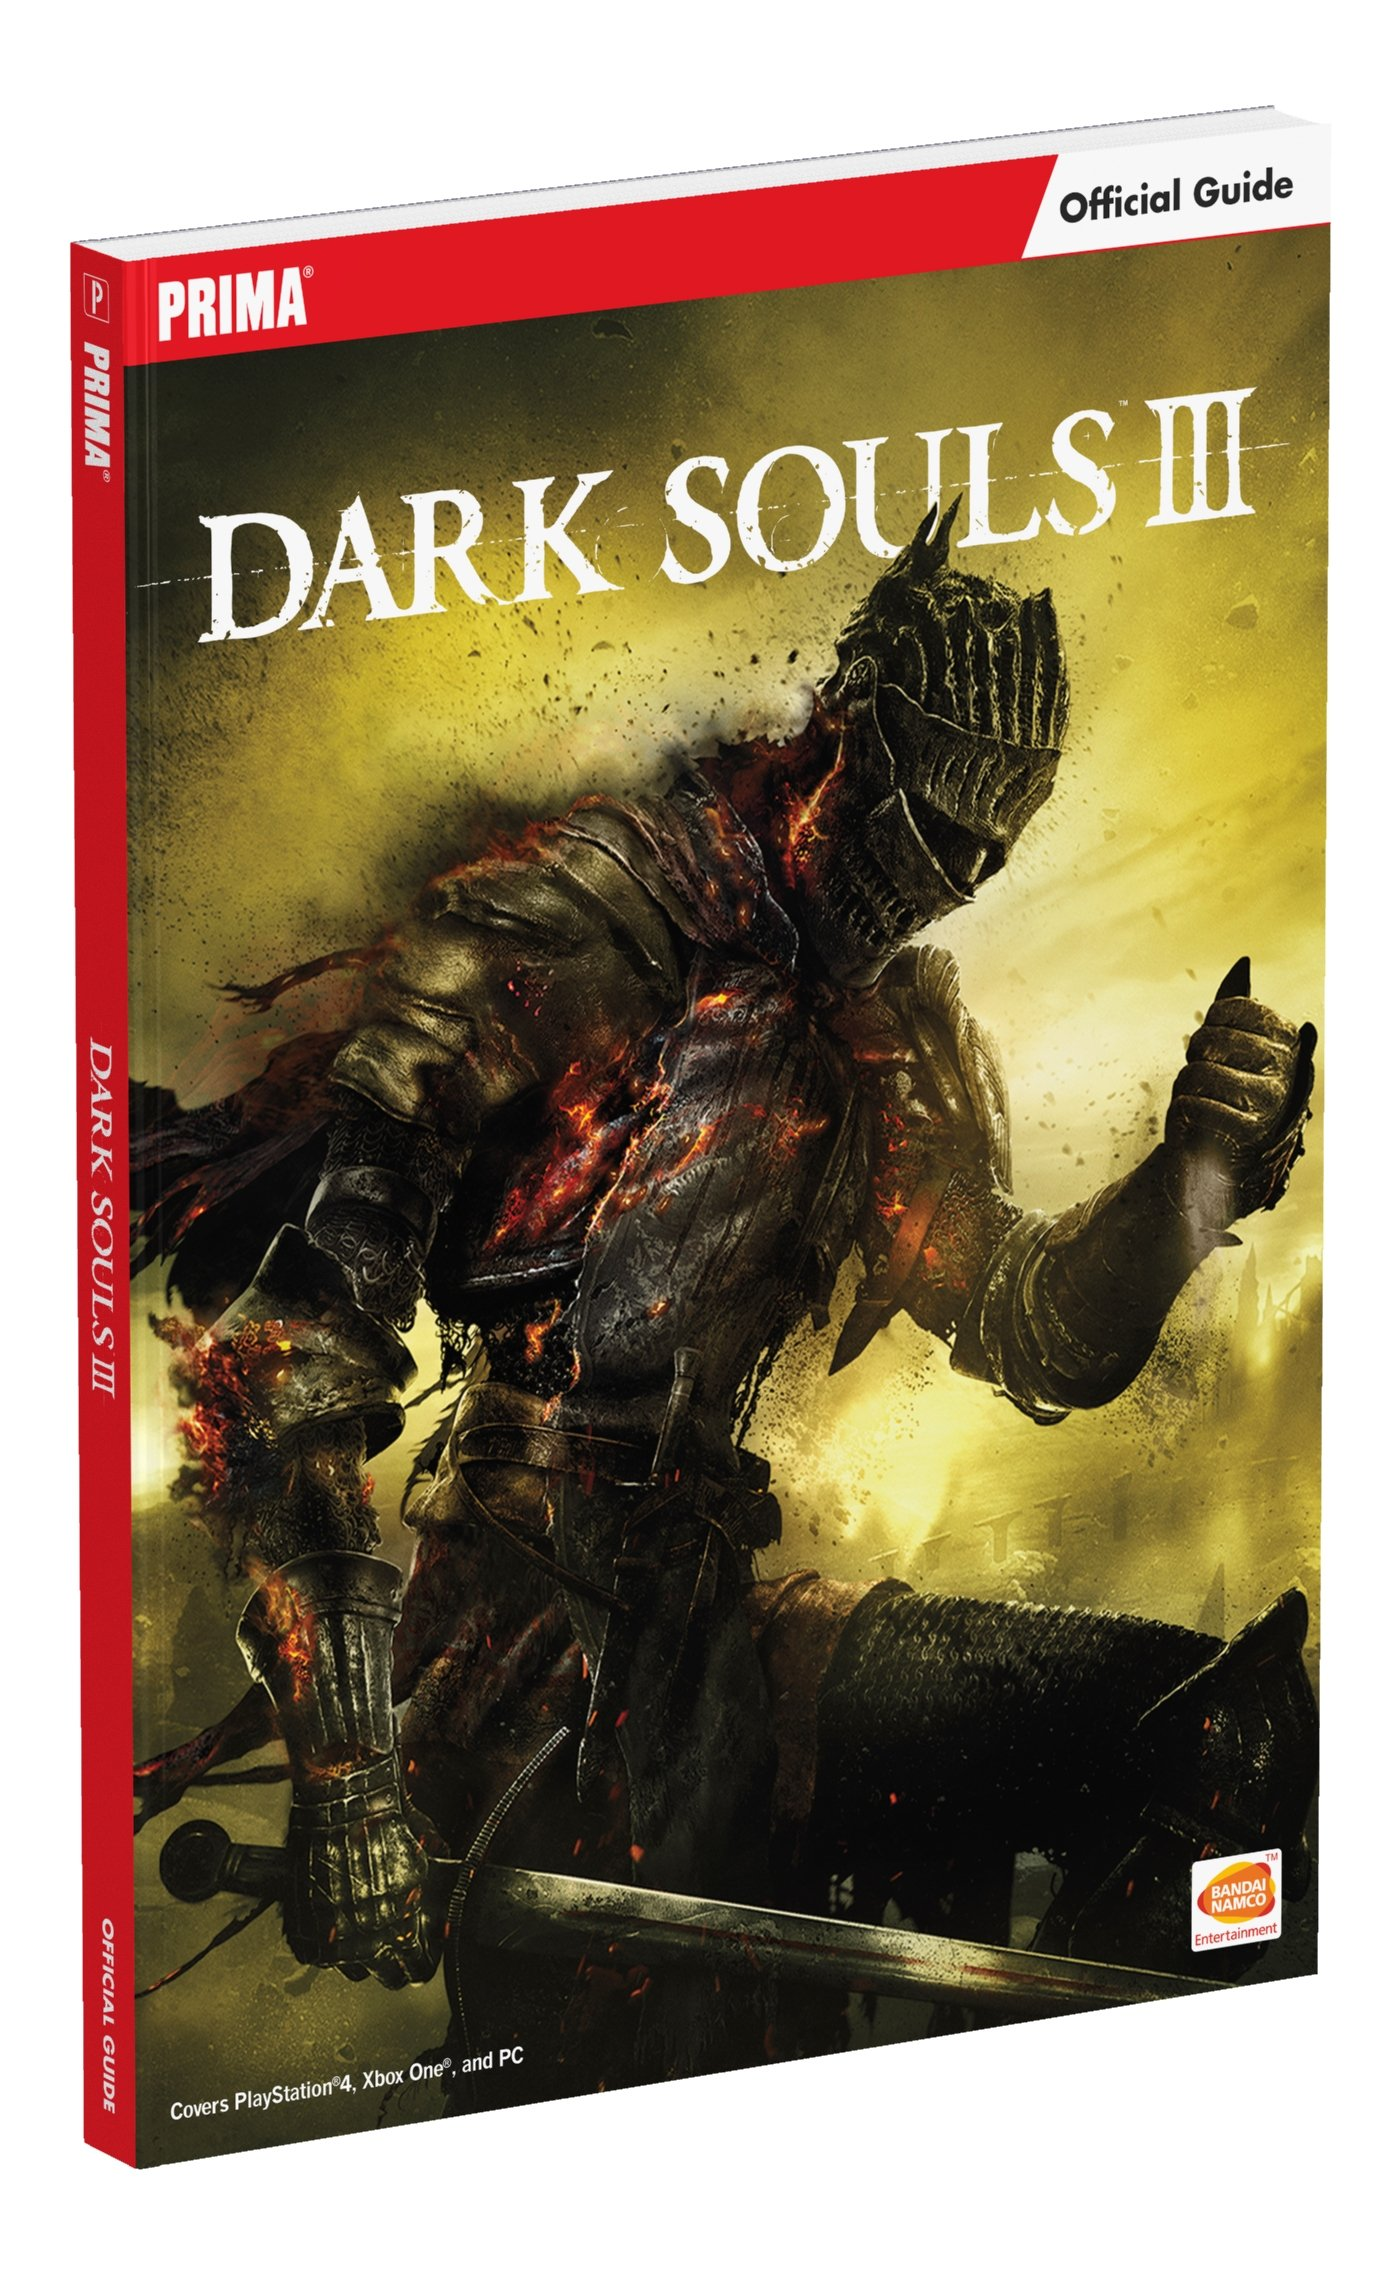 Dark Souls III: Prima Official Game Guide: Amazon.es: Prima Games ...